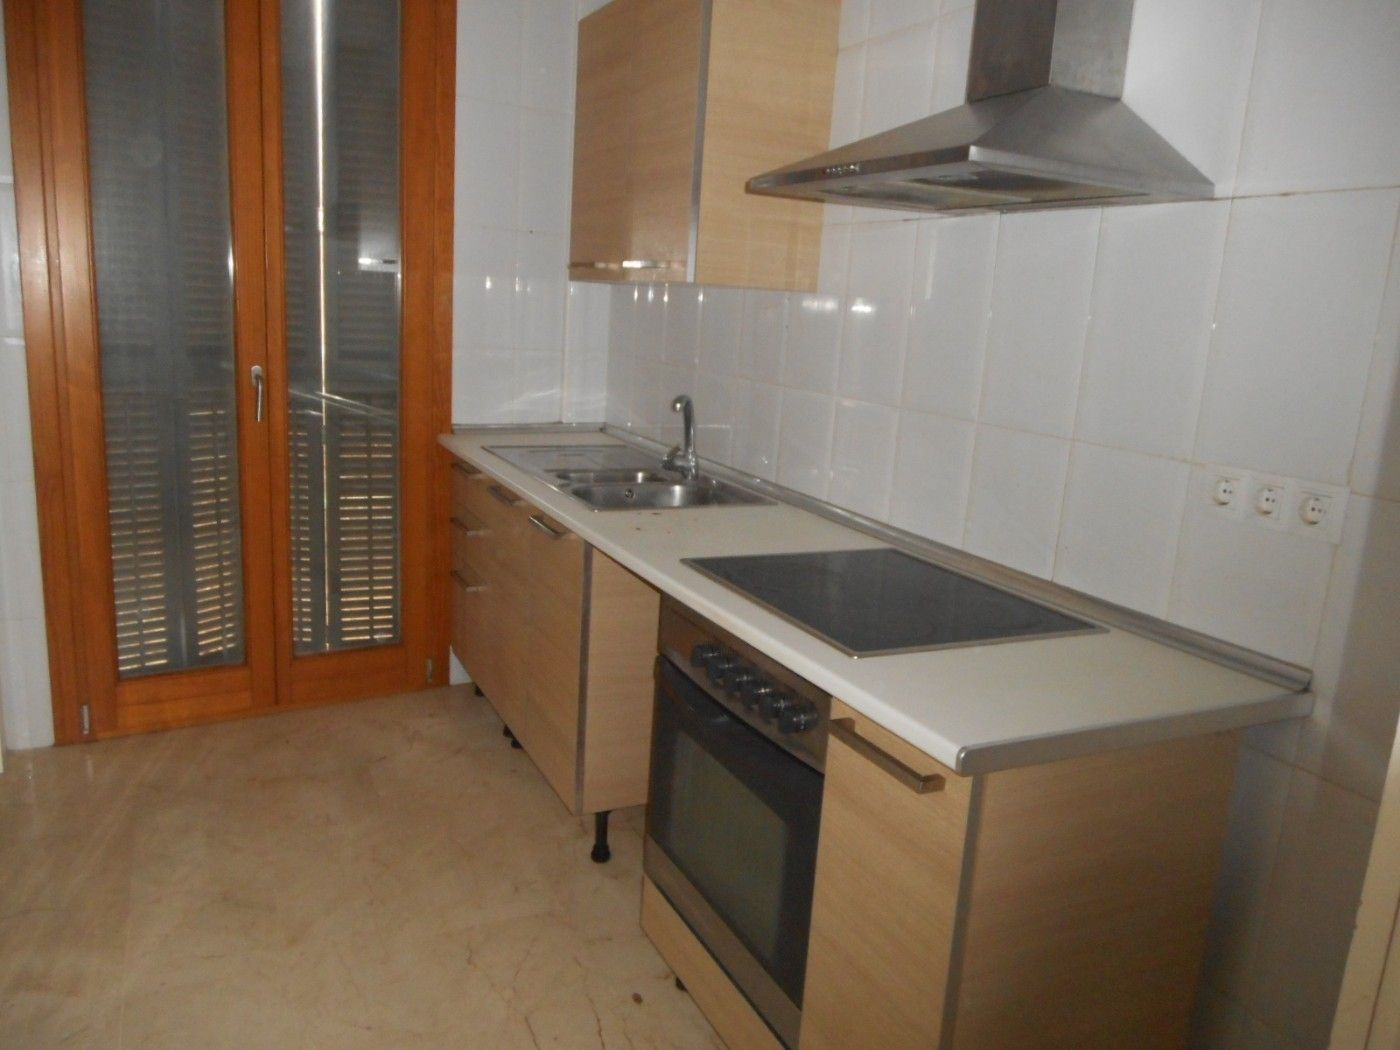 Pis  Carrer bonany. Duplex+parking+transtero